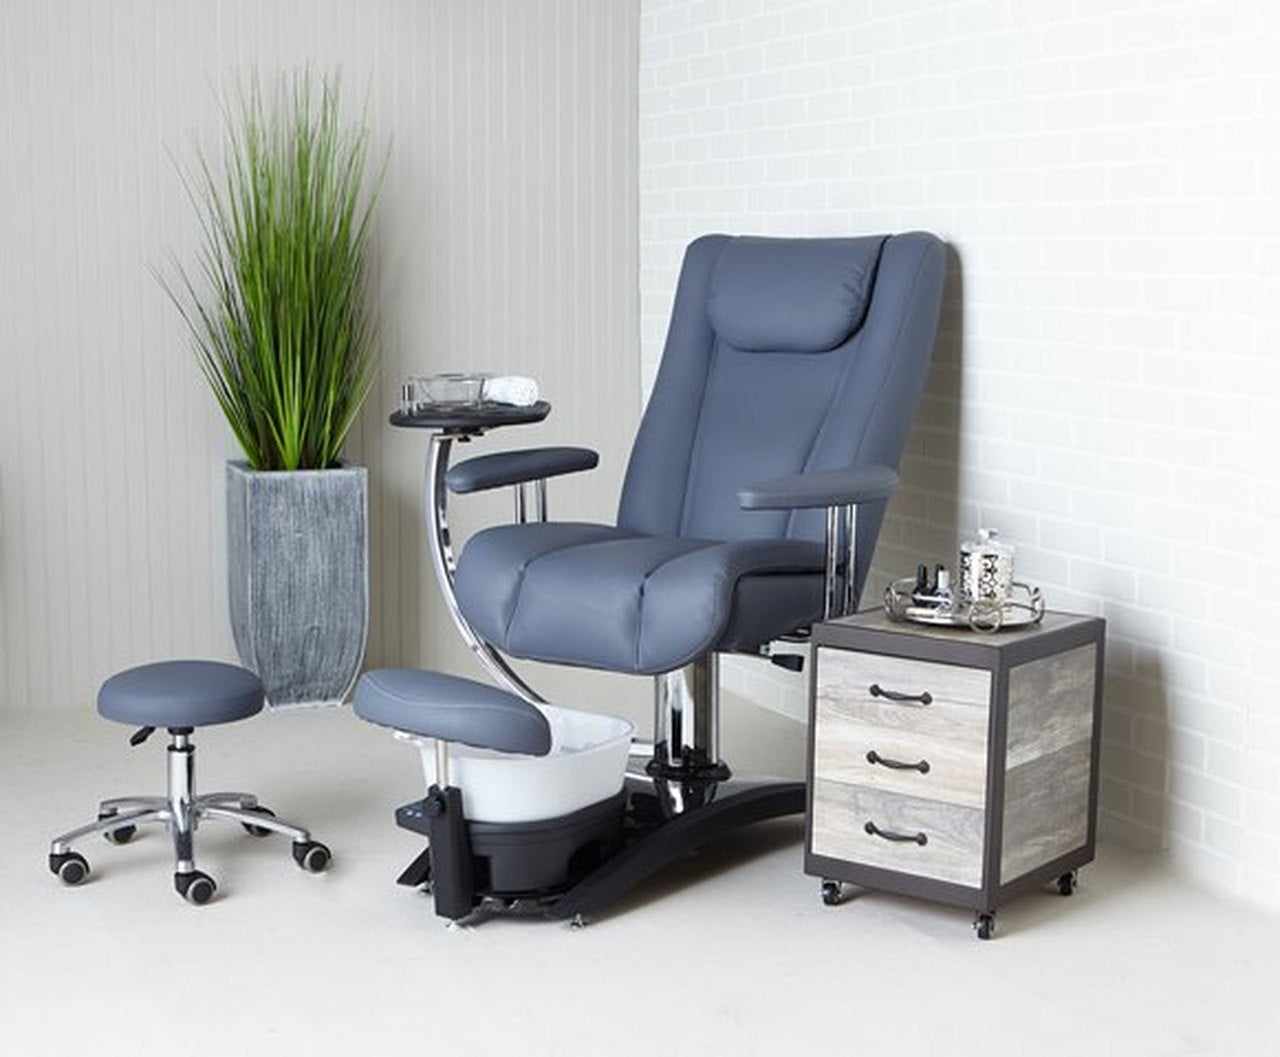 Belava Embrace Pedicure Chair Custom Colors (No Plumbing)